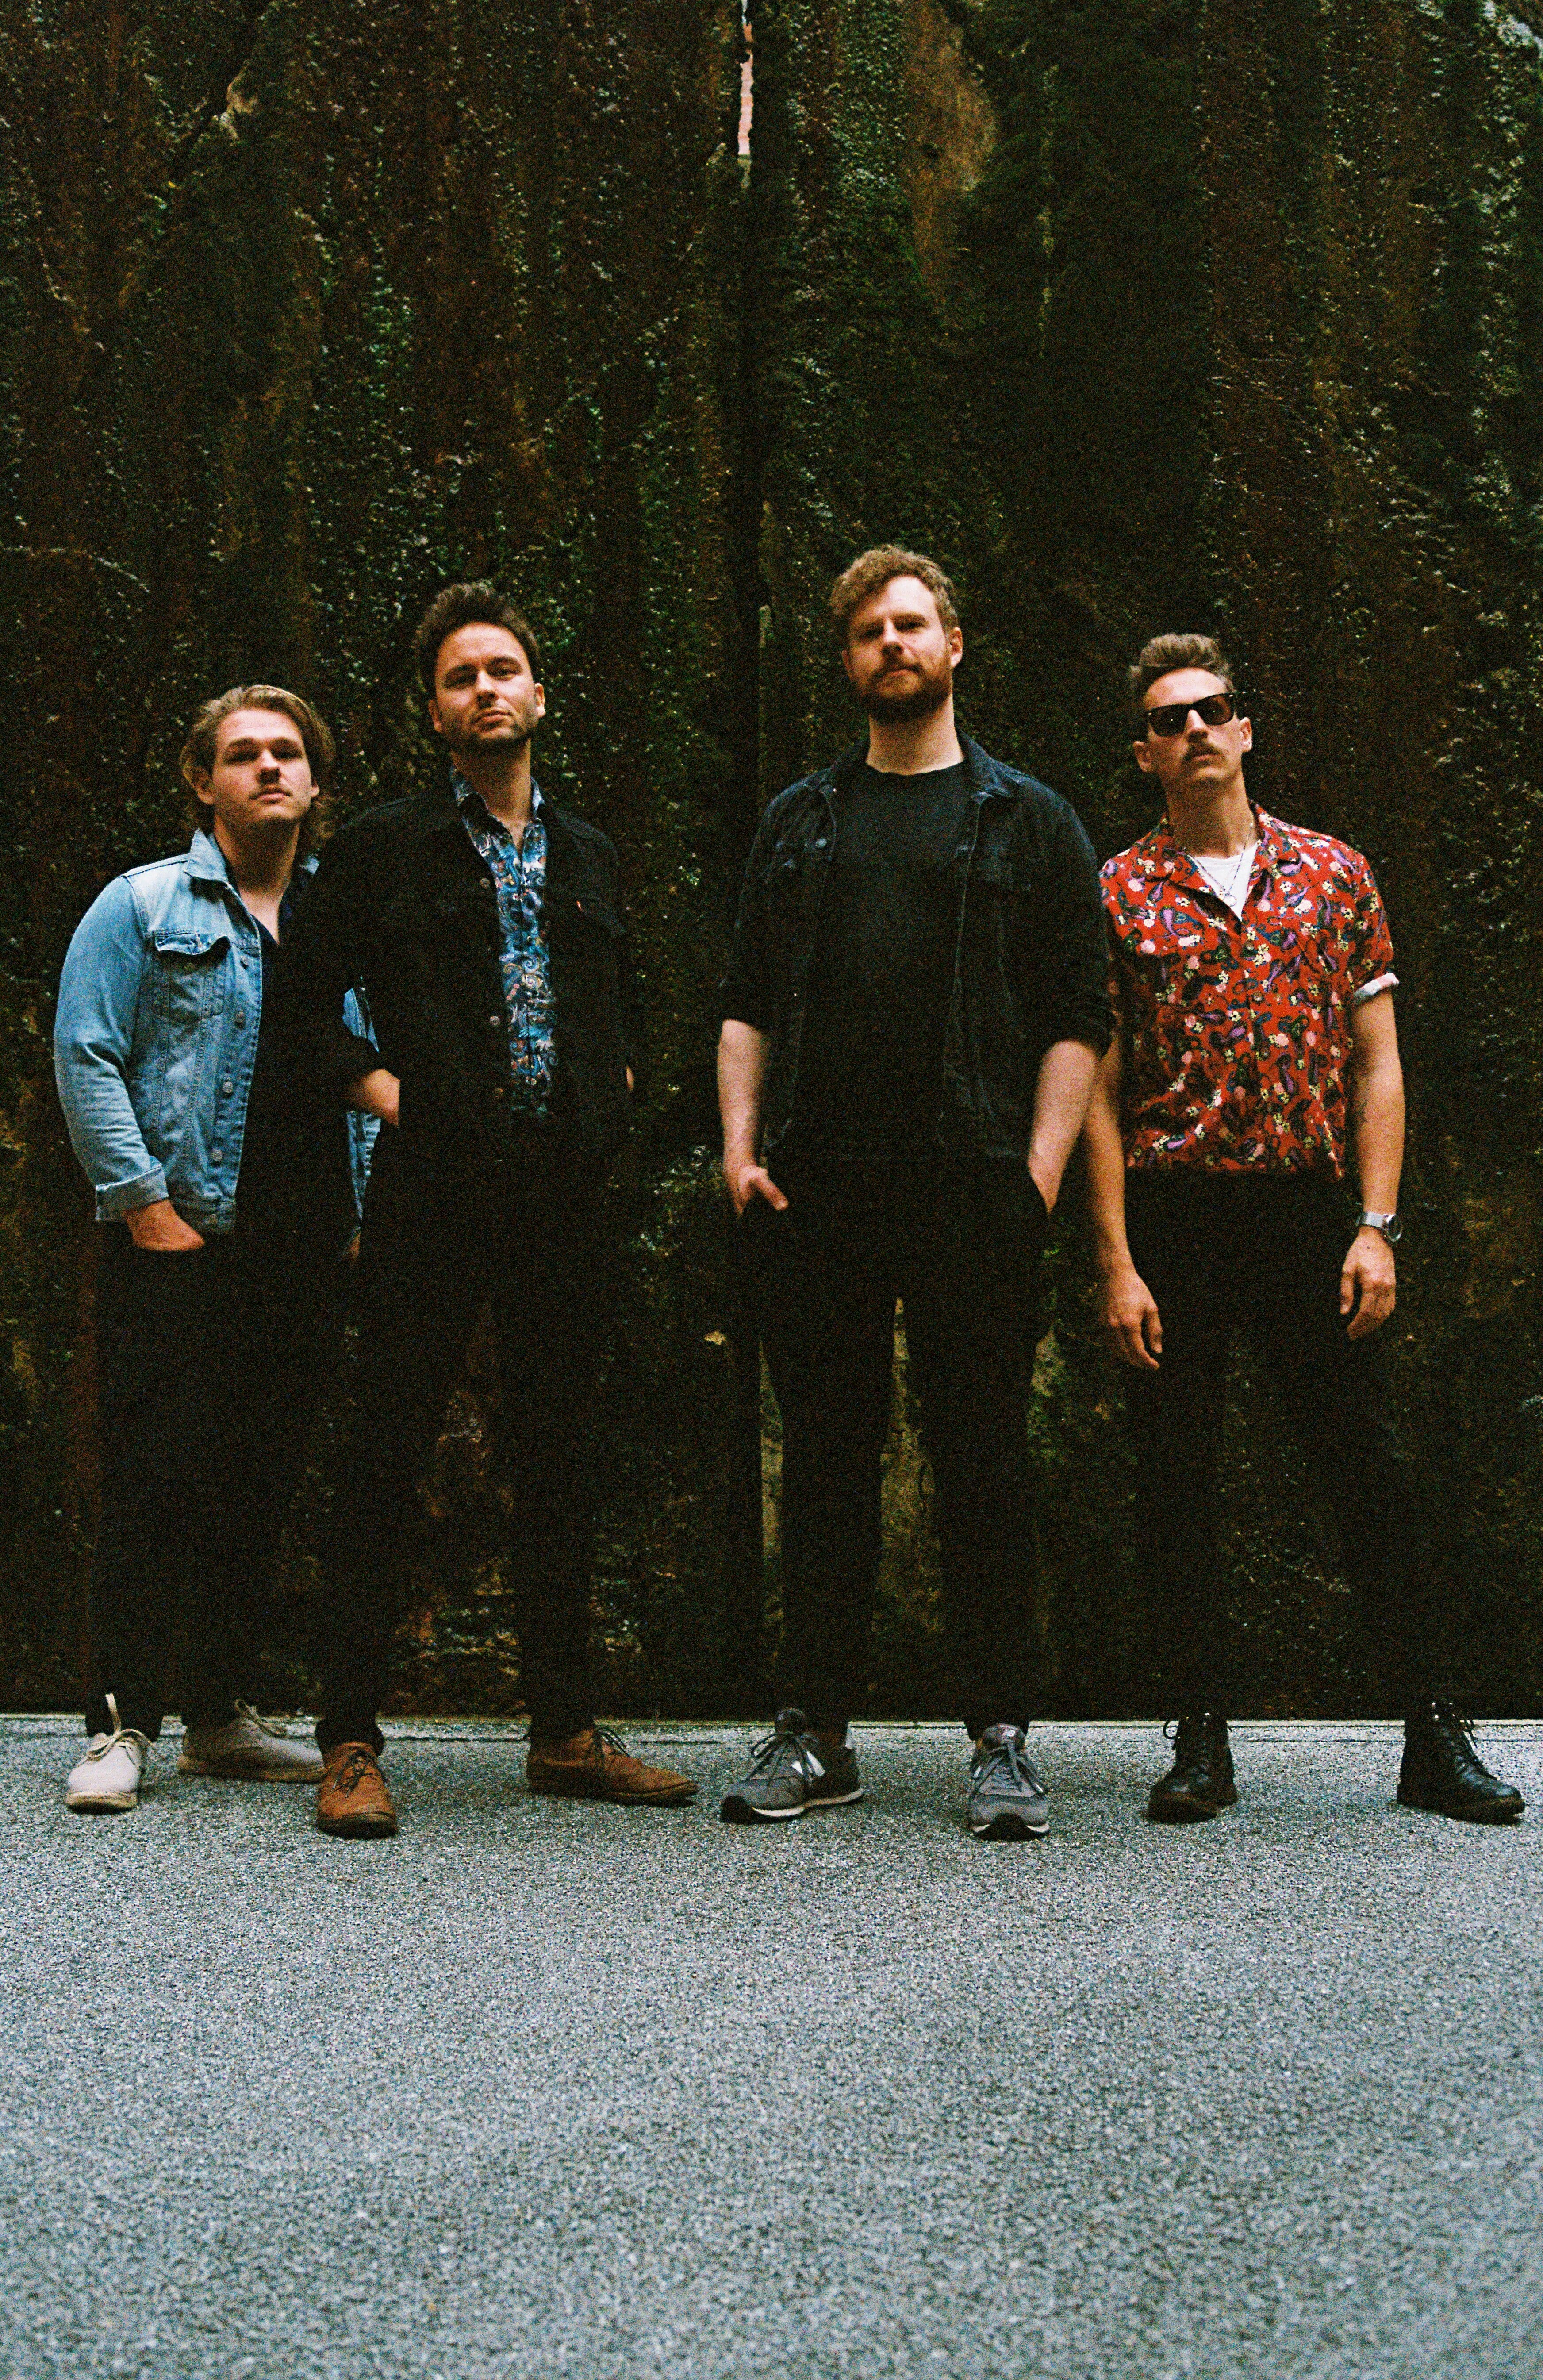 Berlin RockersREDSCALE Stir Sleeping Giants on Colossal New Album withMAJESTIC MOUNTAIN RECORDS